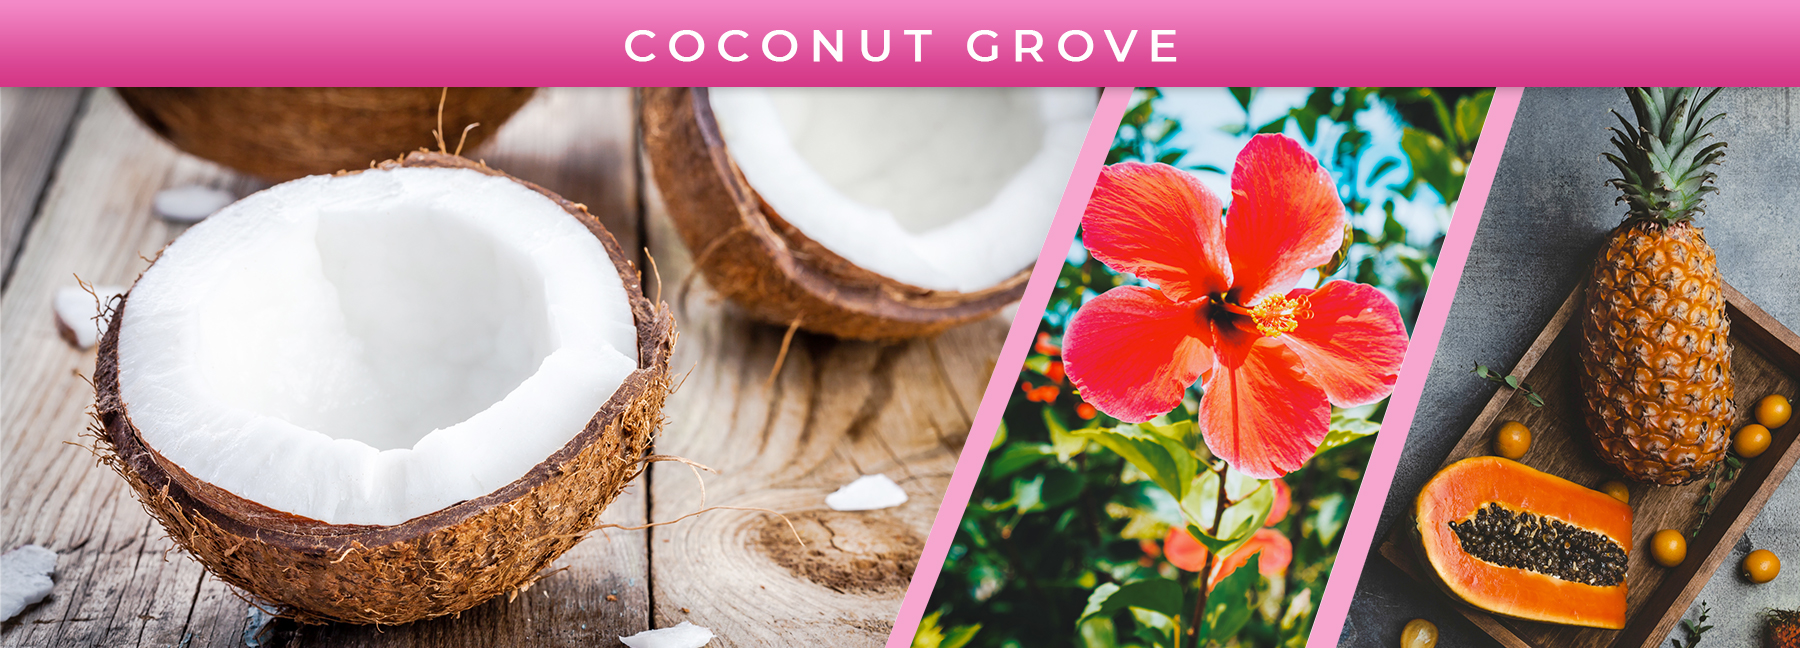 Coconut Grove fragrance elements